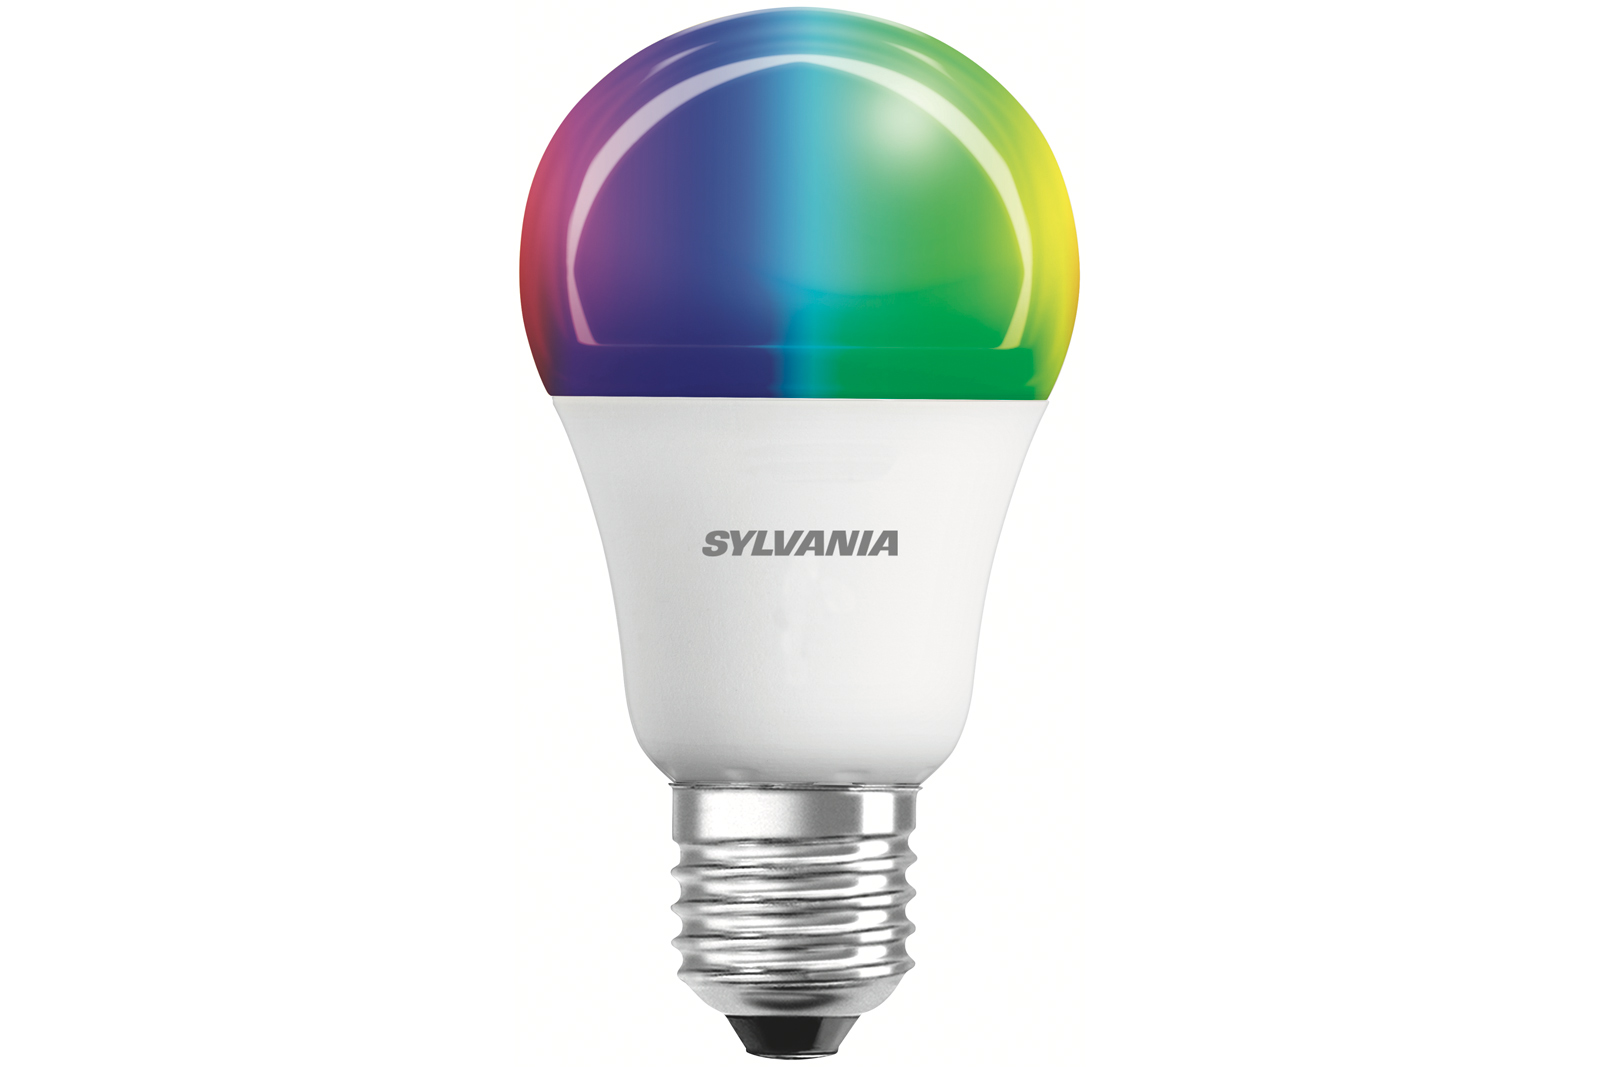 Sylvania smart light bulb talks to siri without a hub 15 minute news Smart light bulbs